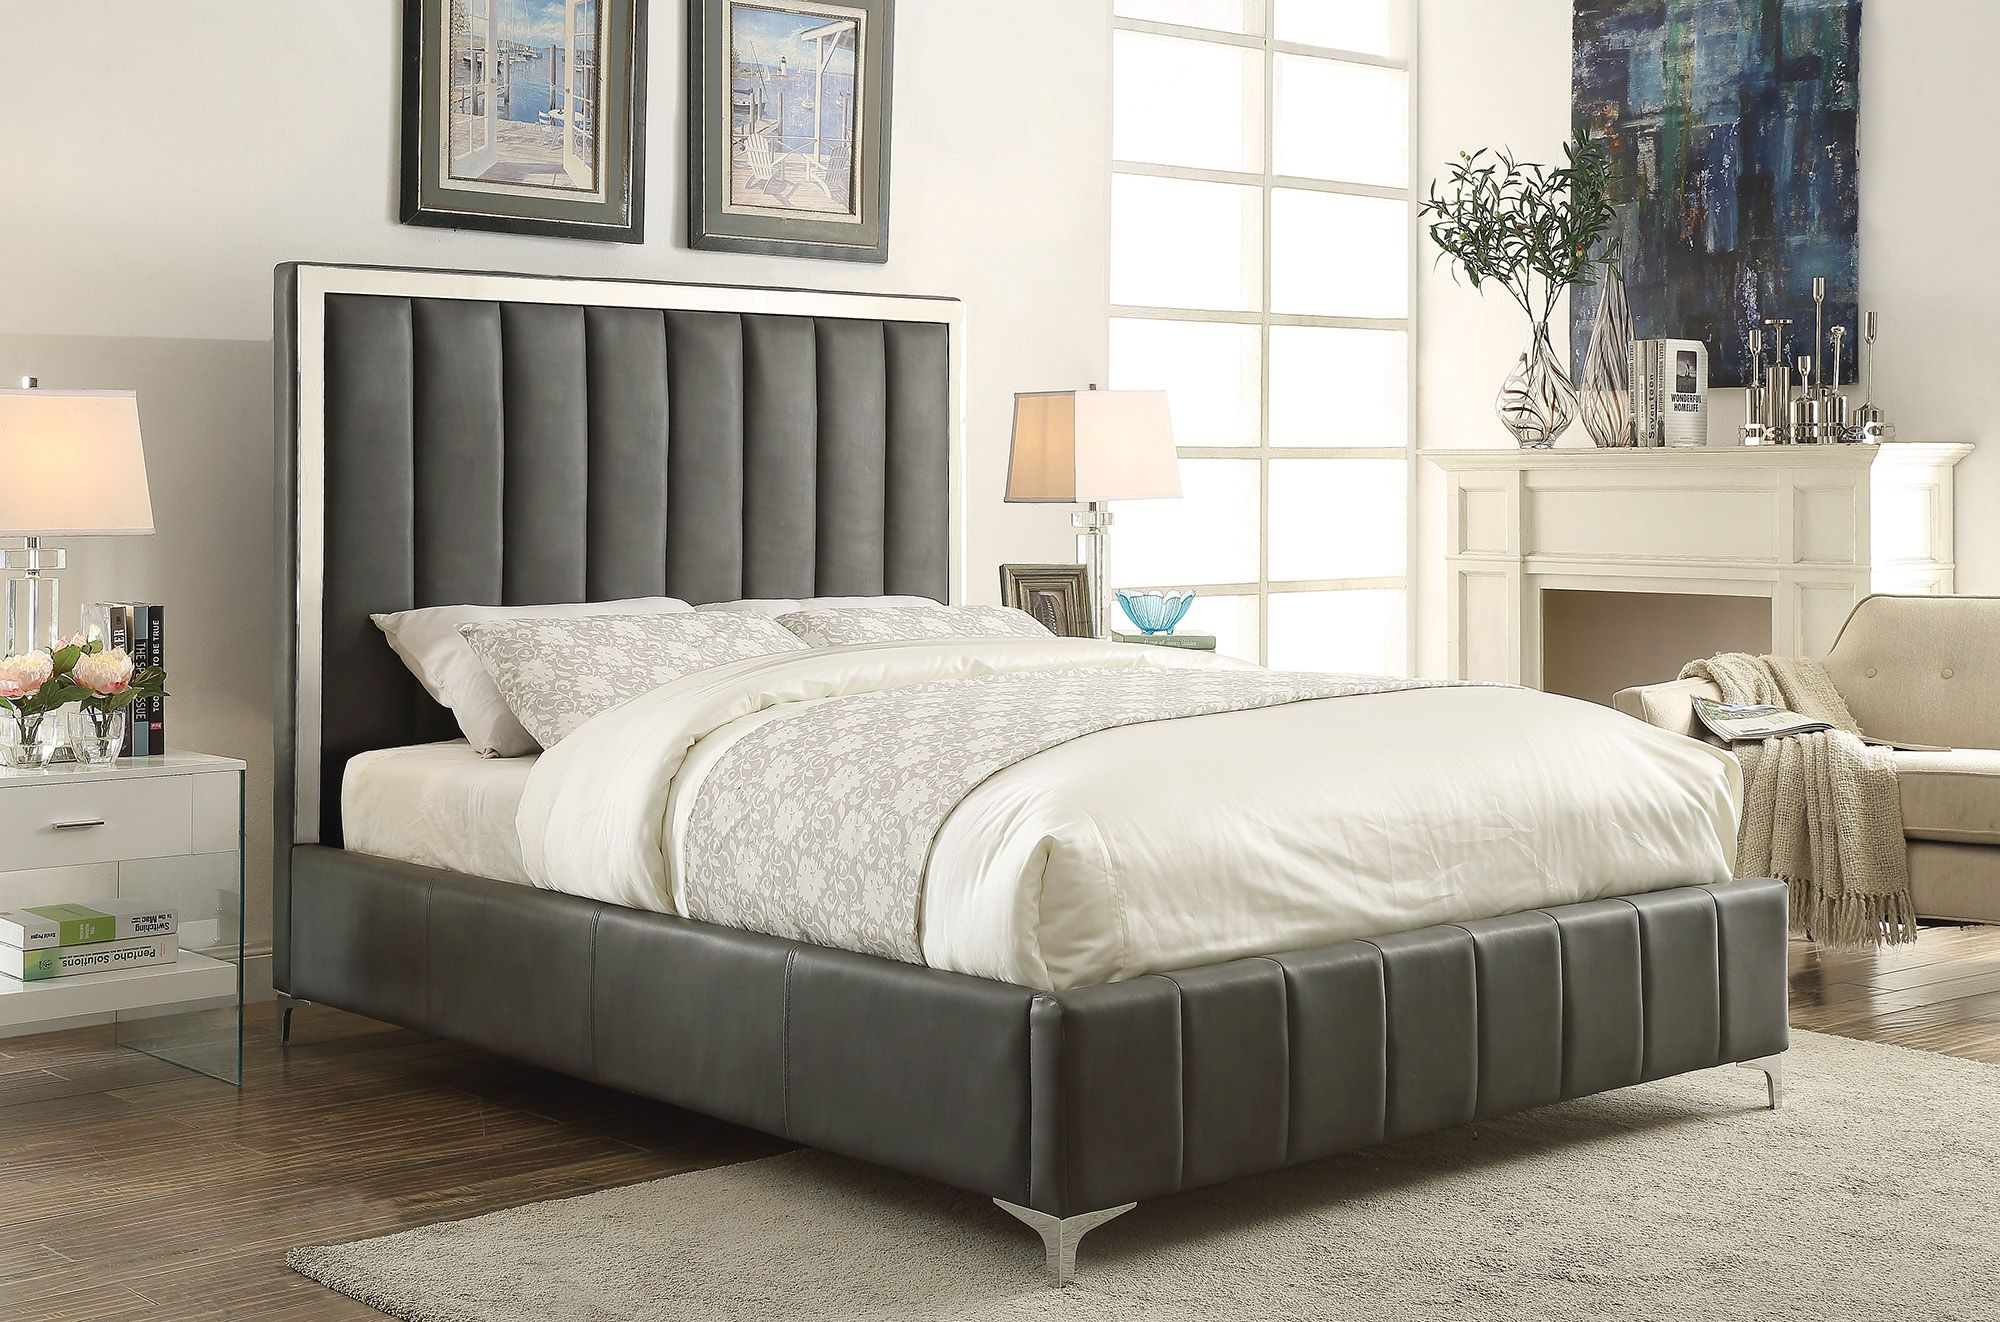 bling game collection 300637q queen bed frame queen beds bed